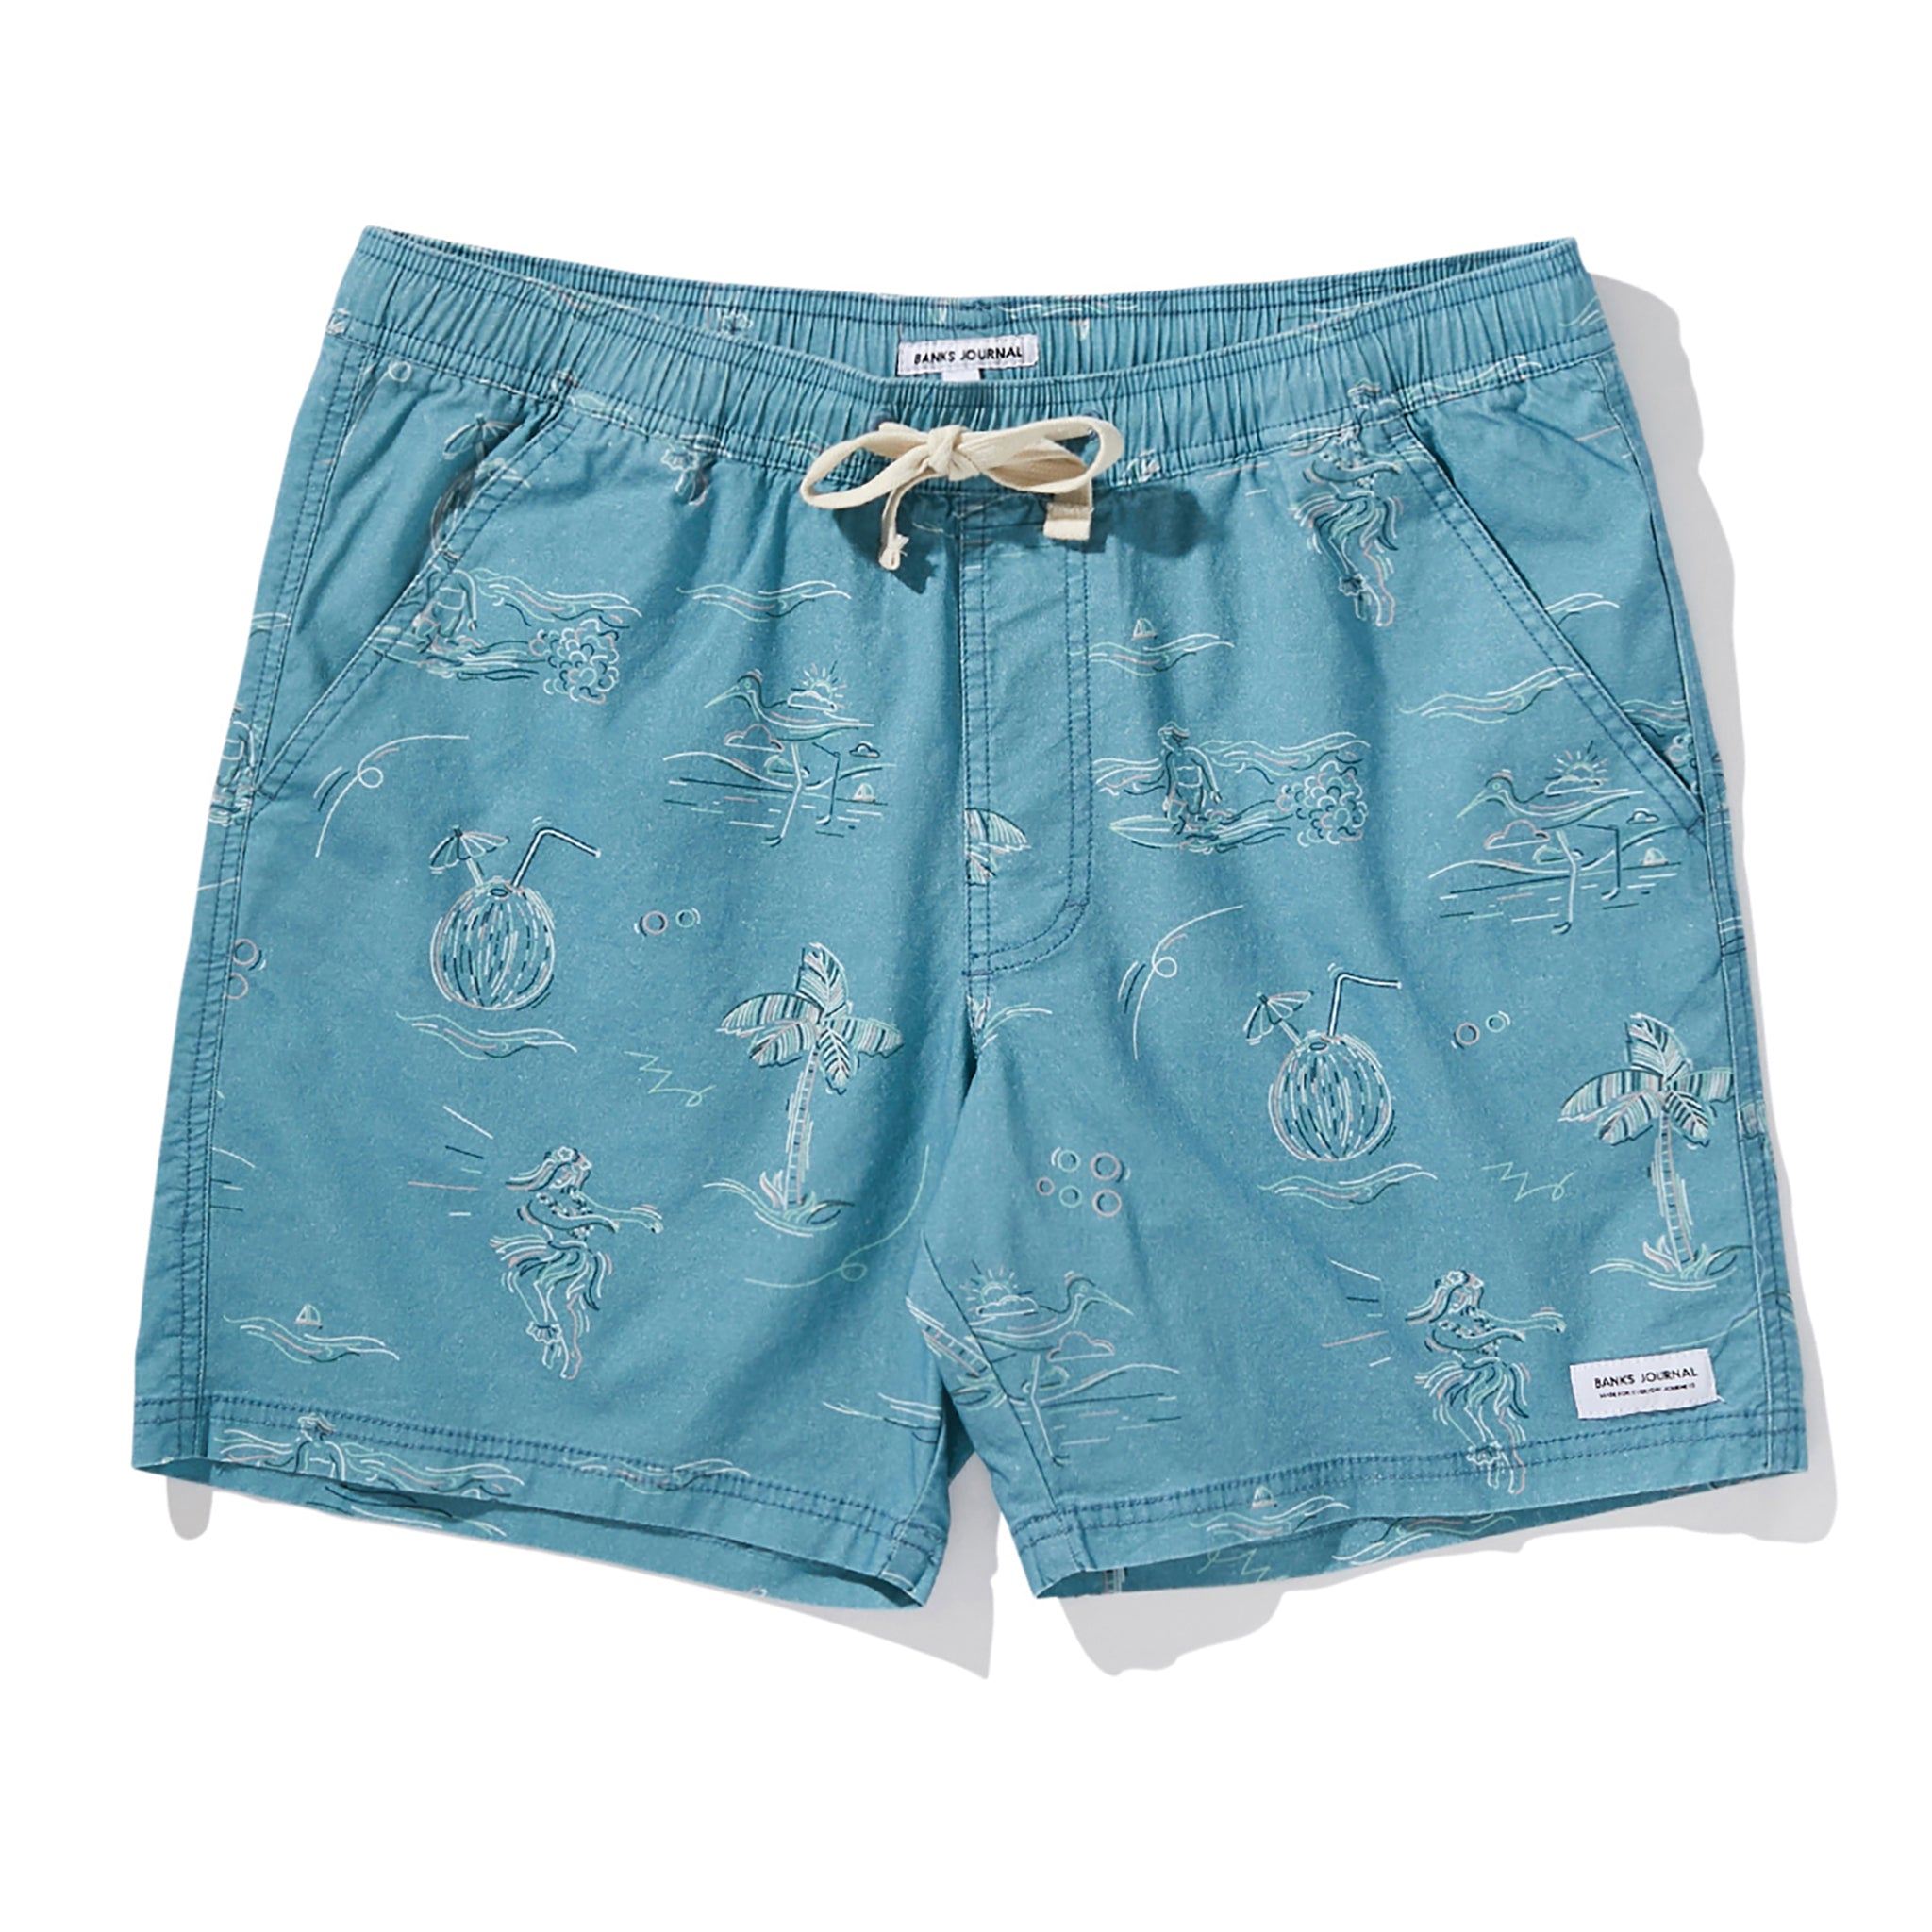 Seaside Boardshort